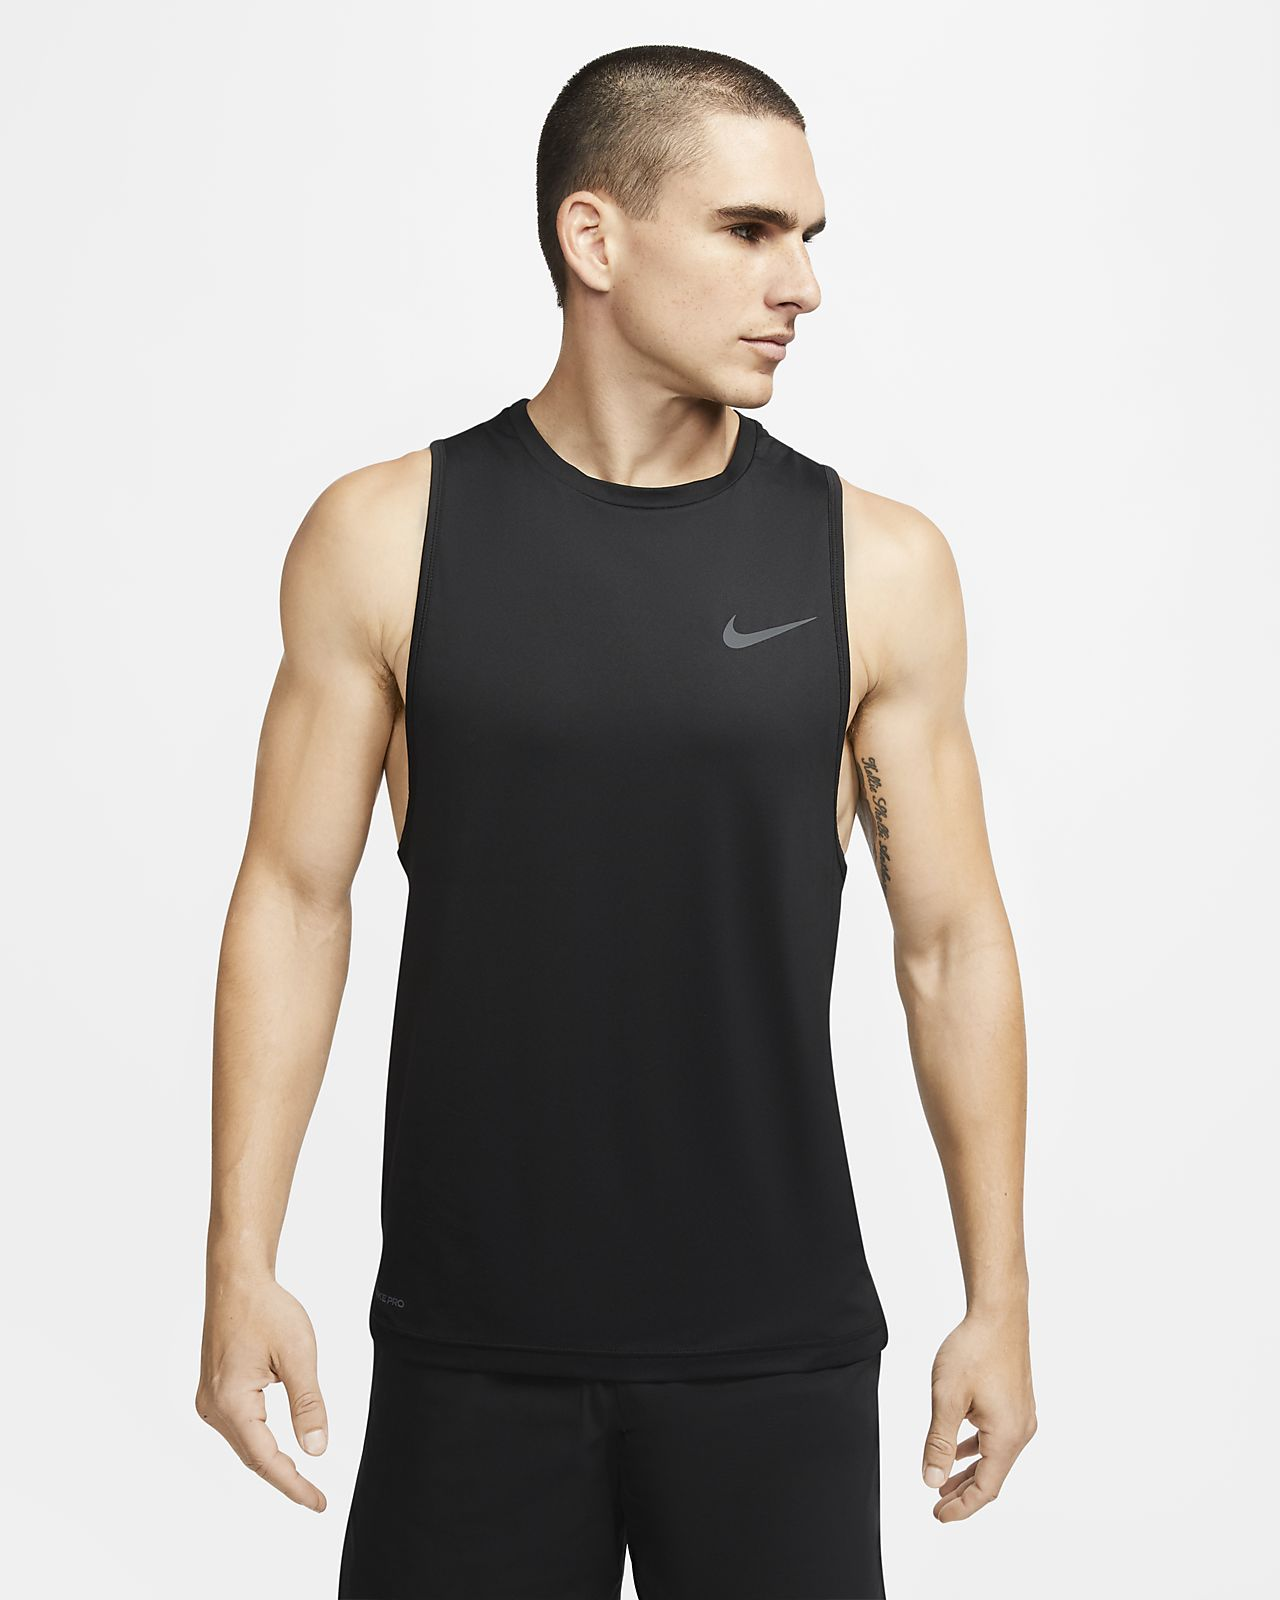 Nike Trainings-Tanktop für Herren